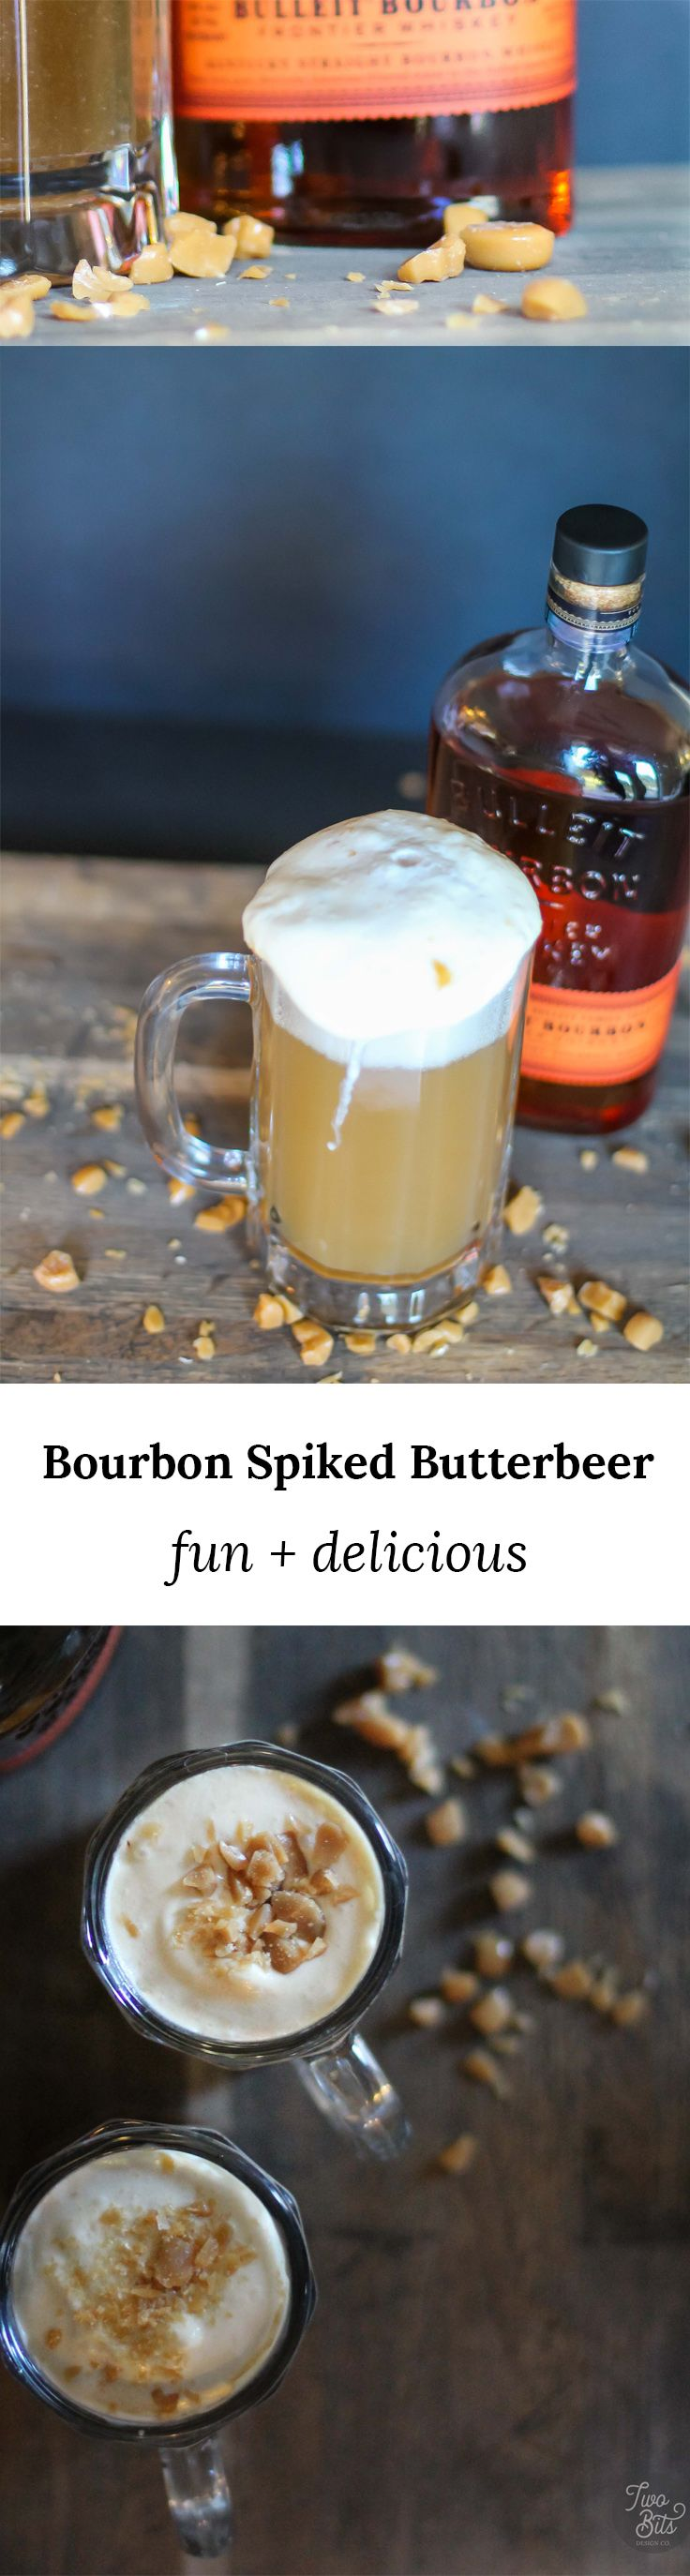 Our Bulleit Bourbon spiked butterbeer recipe is a favorite of muggles, half bloods and wizards alike! Smokey Bulleit Bourbon mixed with a crisp and creamy base make this cocktail perfect for any Halloween or fall celebration!